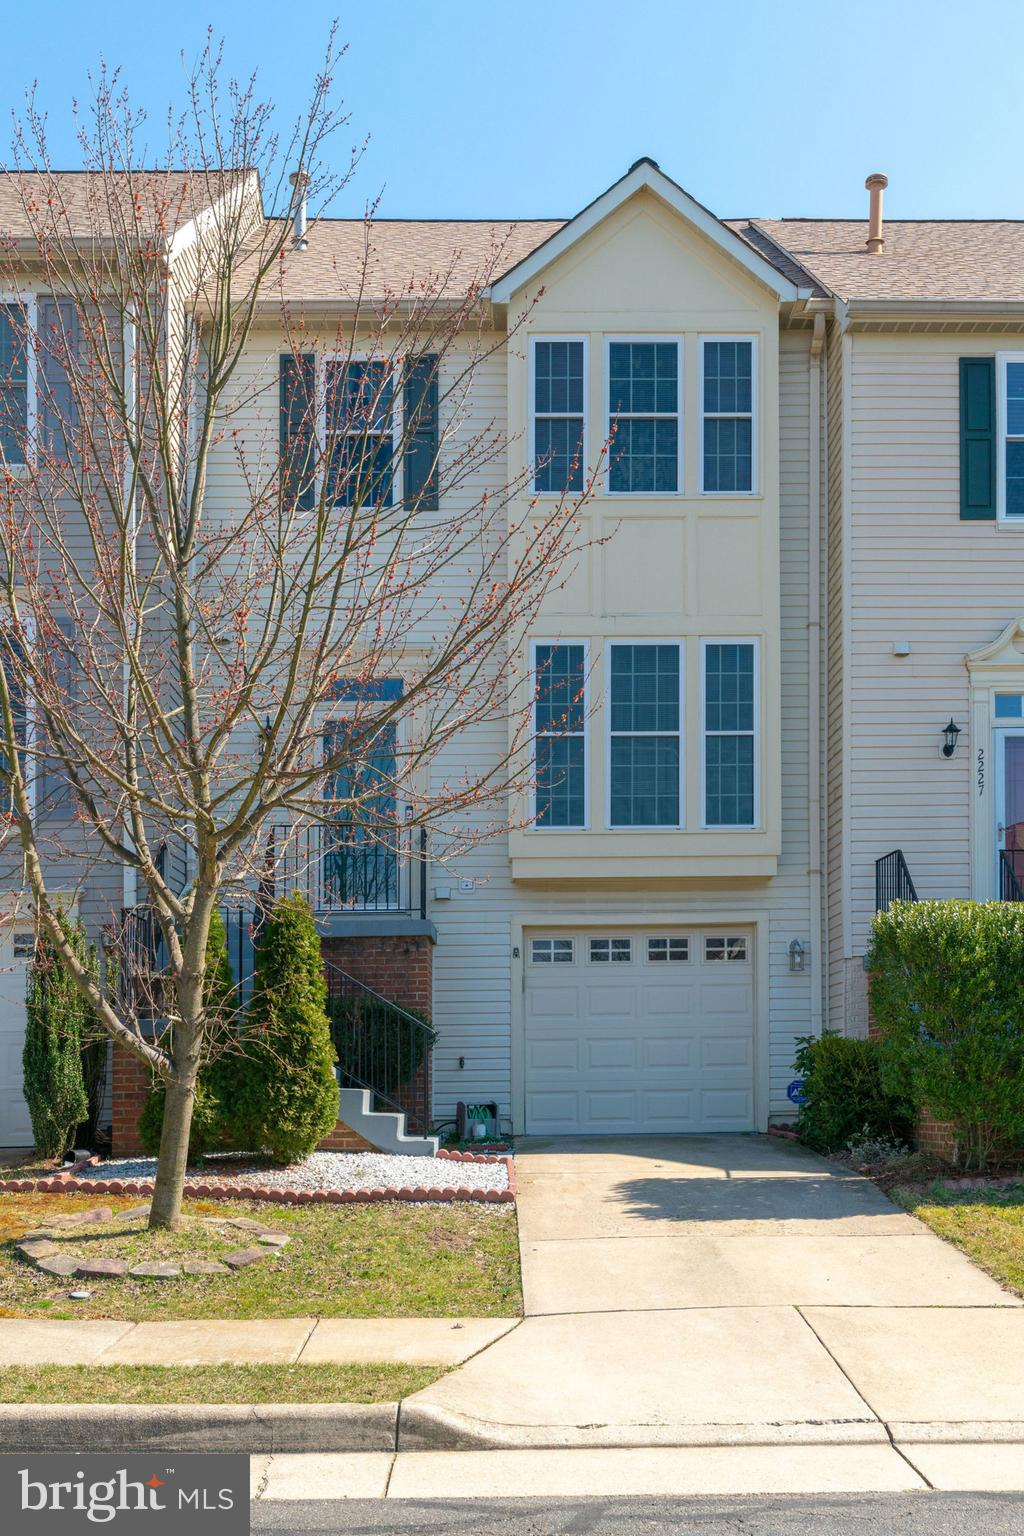 A Beautiful 3 level townhome with 3 bedrooms, 3 full and 1 half baths. Hardwood on the main level, s